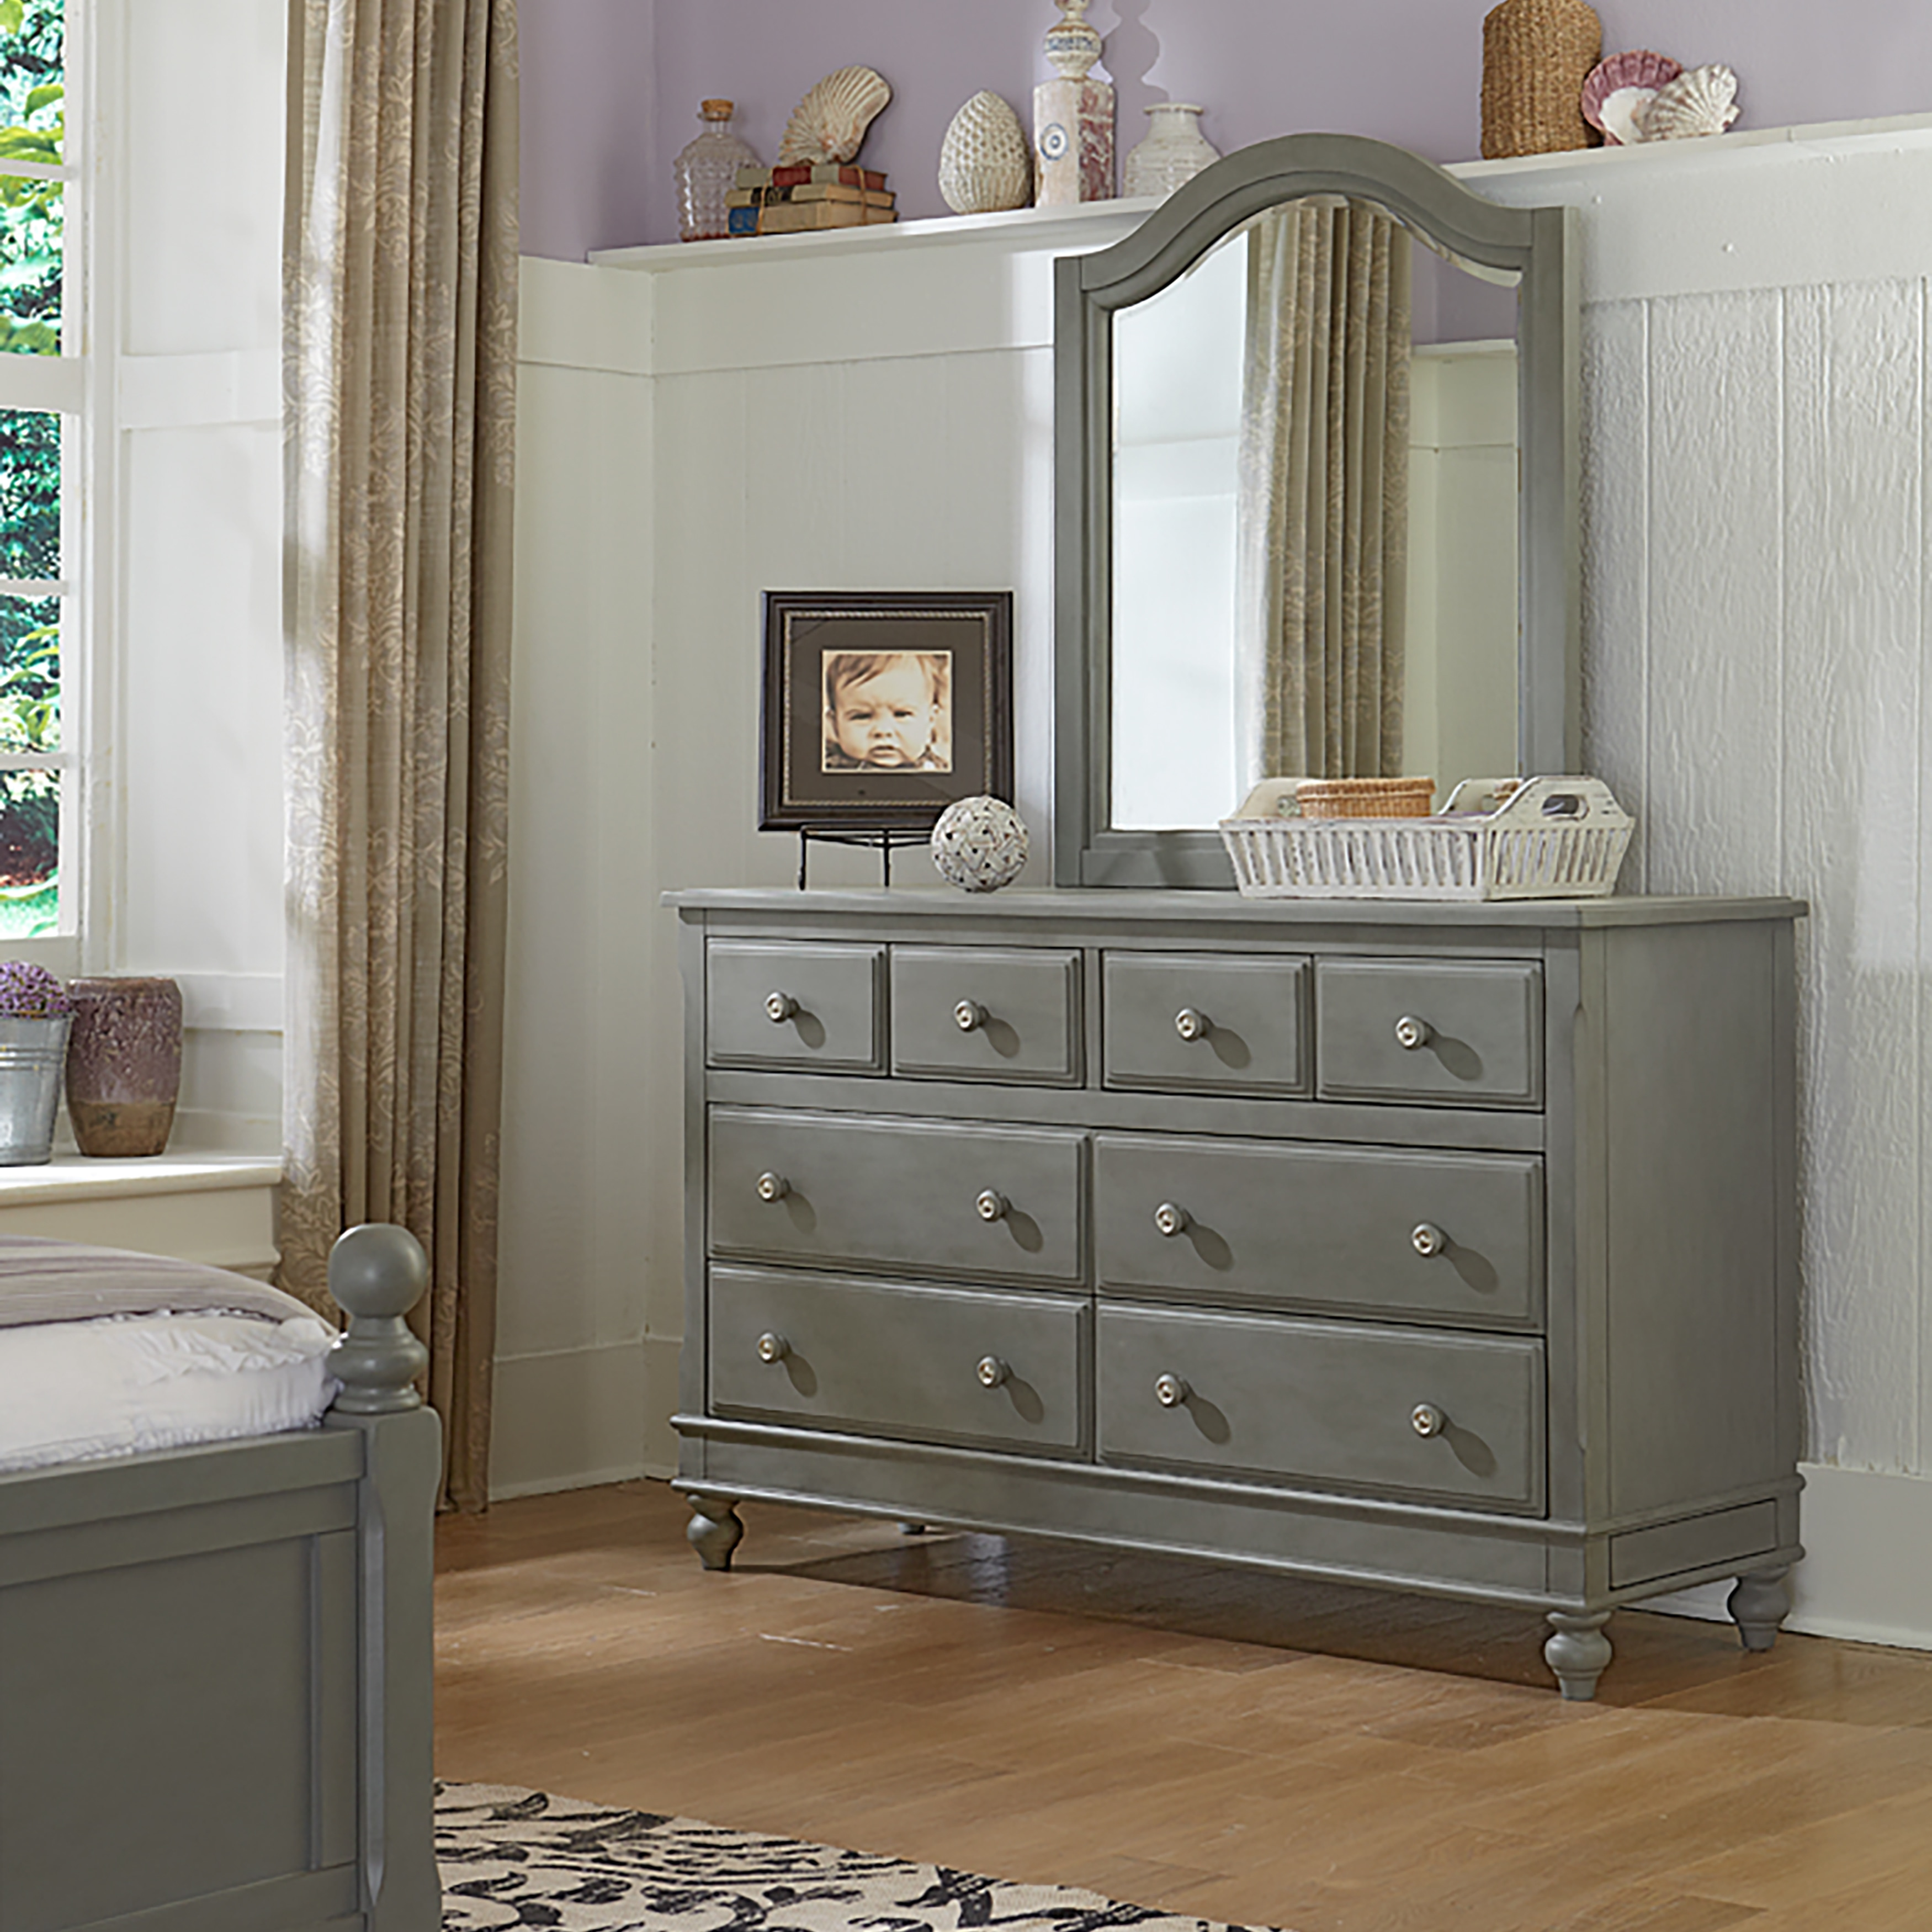 Shop Lake House Stone Grey 8 Drawer Dresser With Mirror On Sale